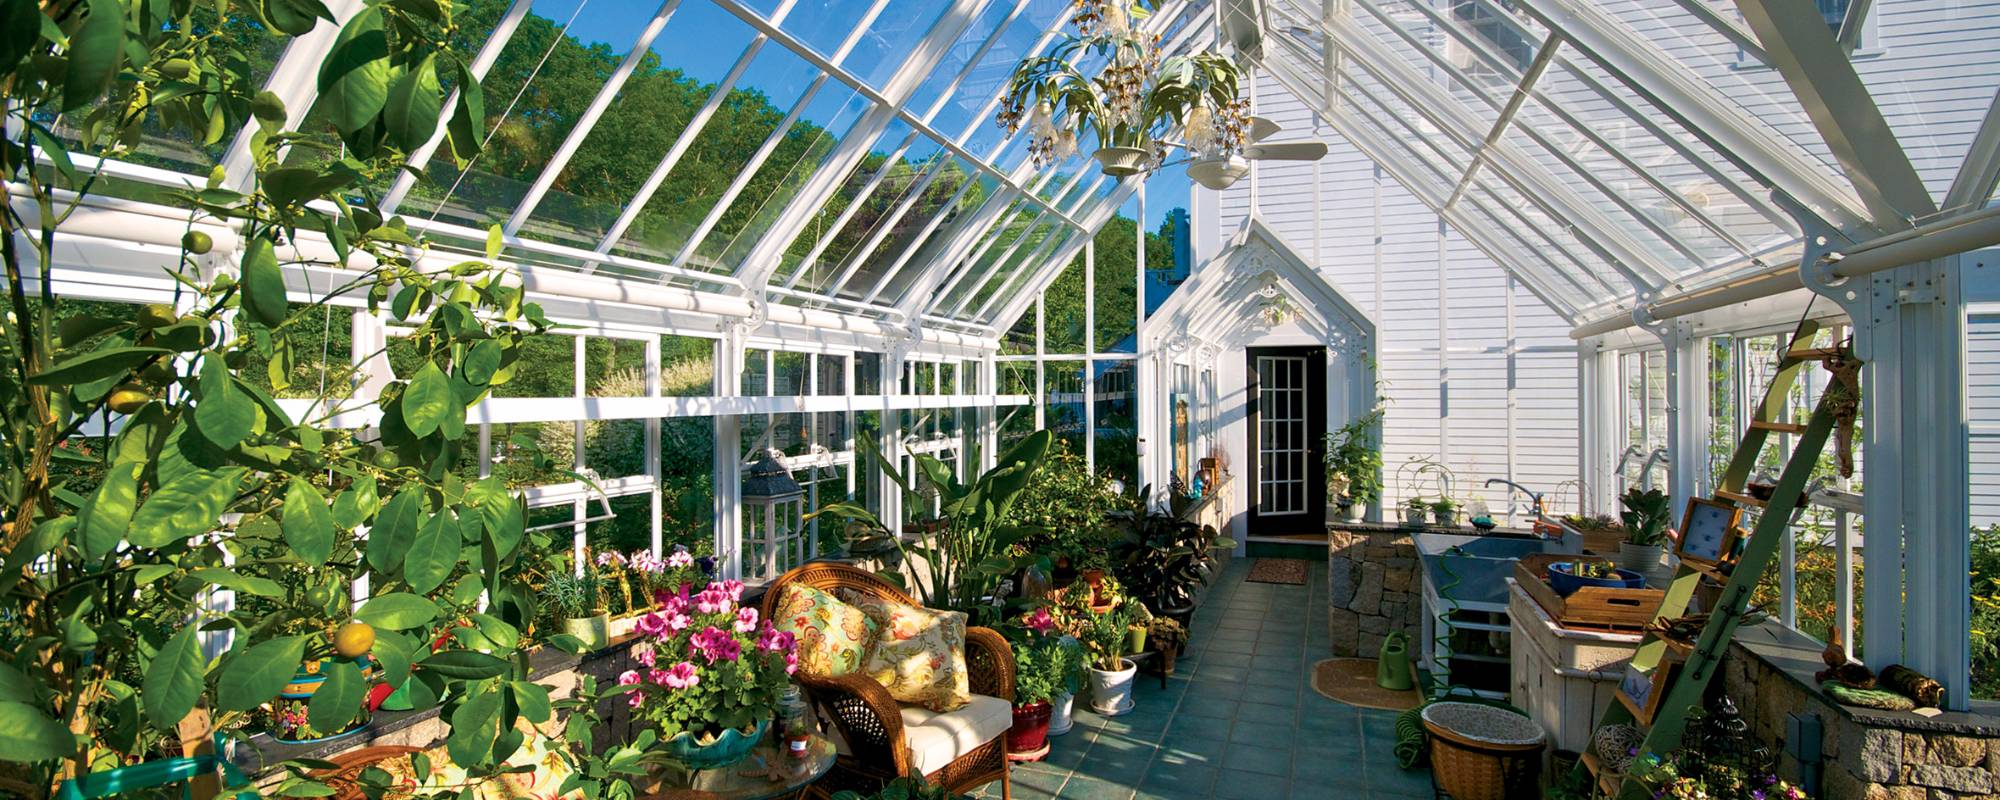 Abutting Greenhouse Example 5 Hartley Botanic